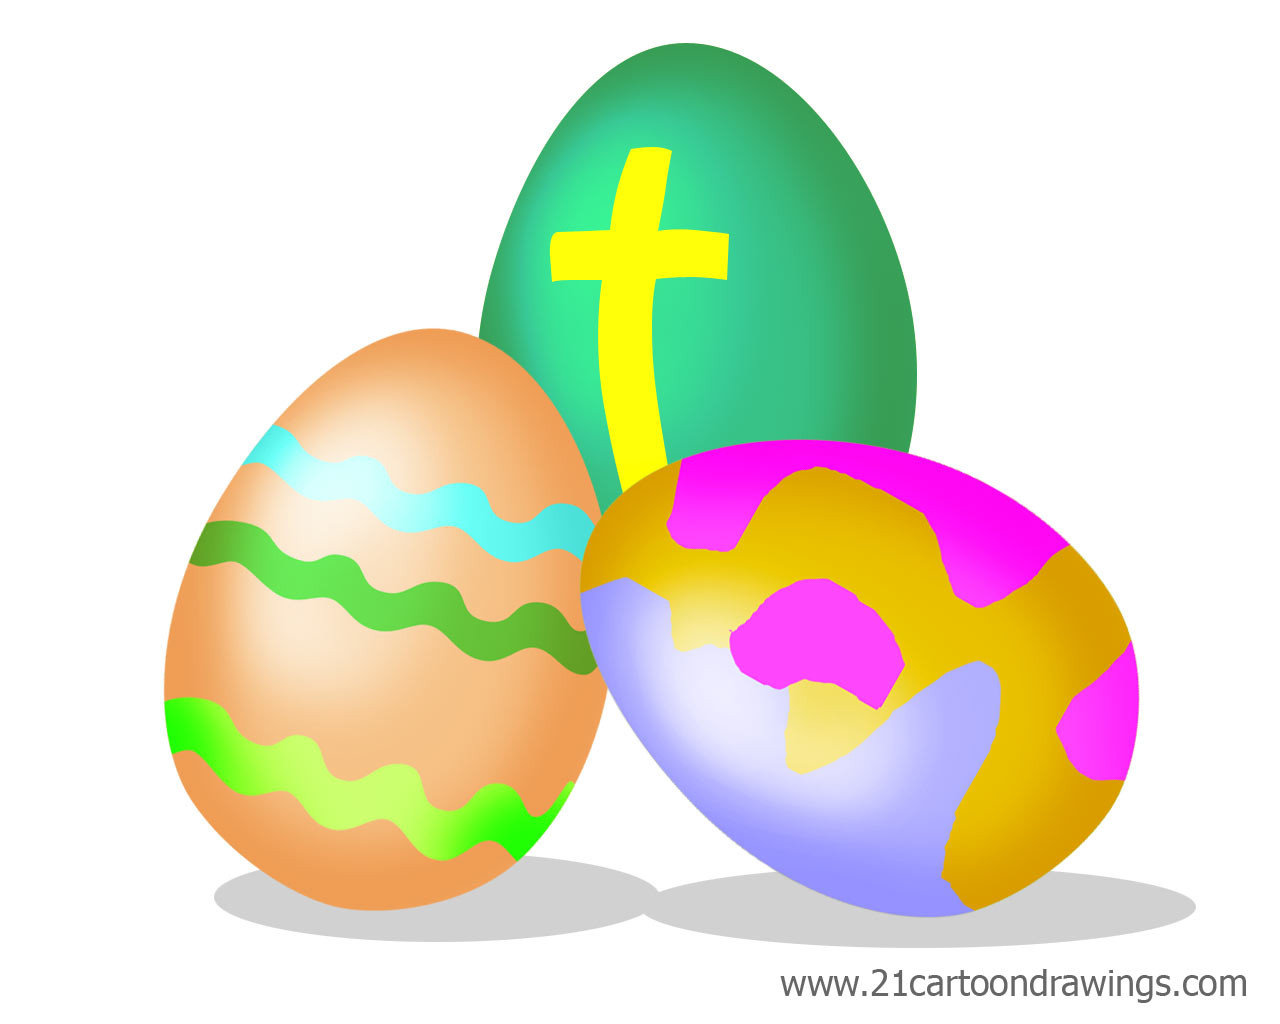 1280x1024 Happy Easter Religious Clipart Hd Images Incredible Transitionsfv